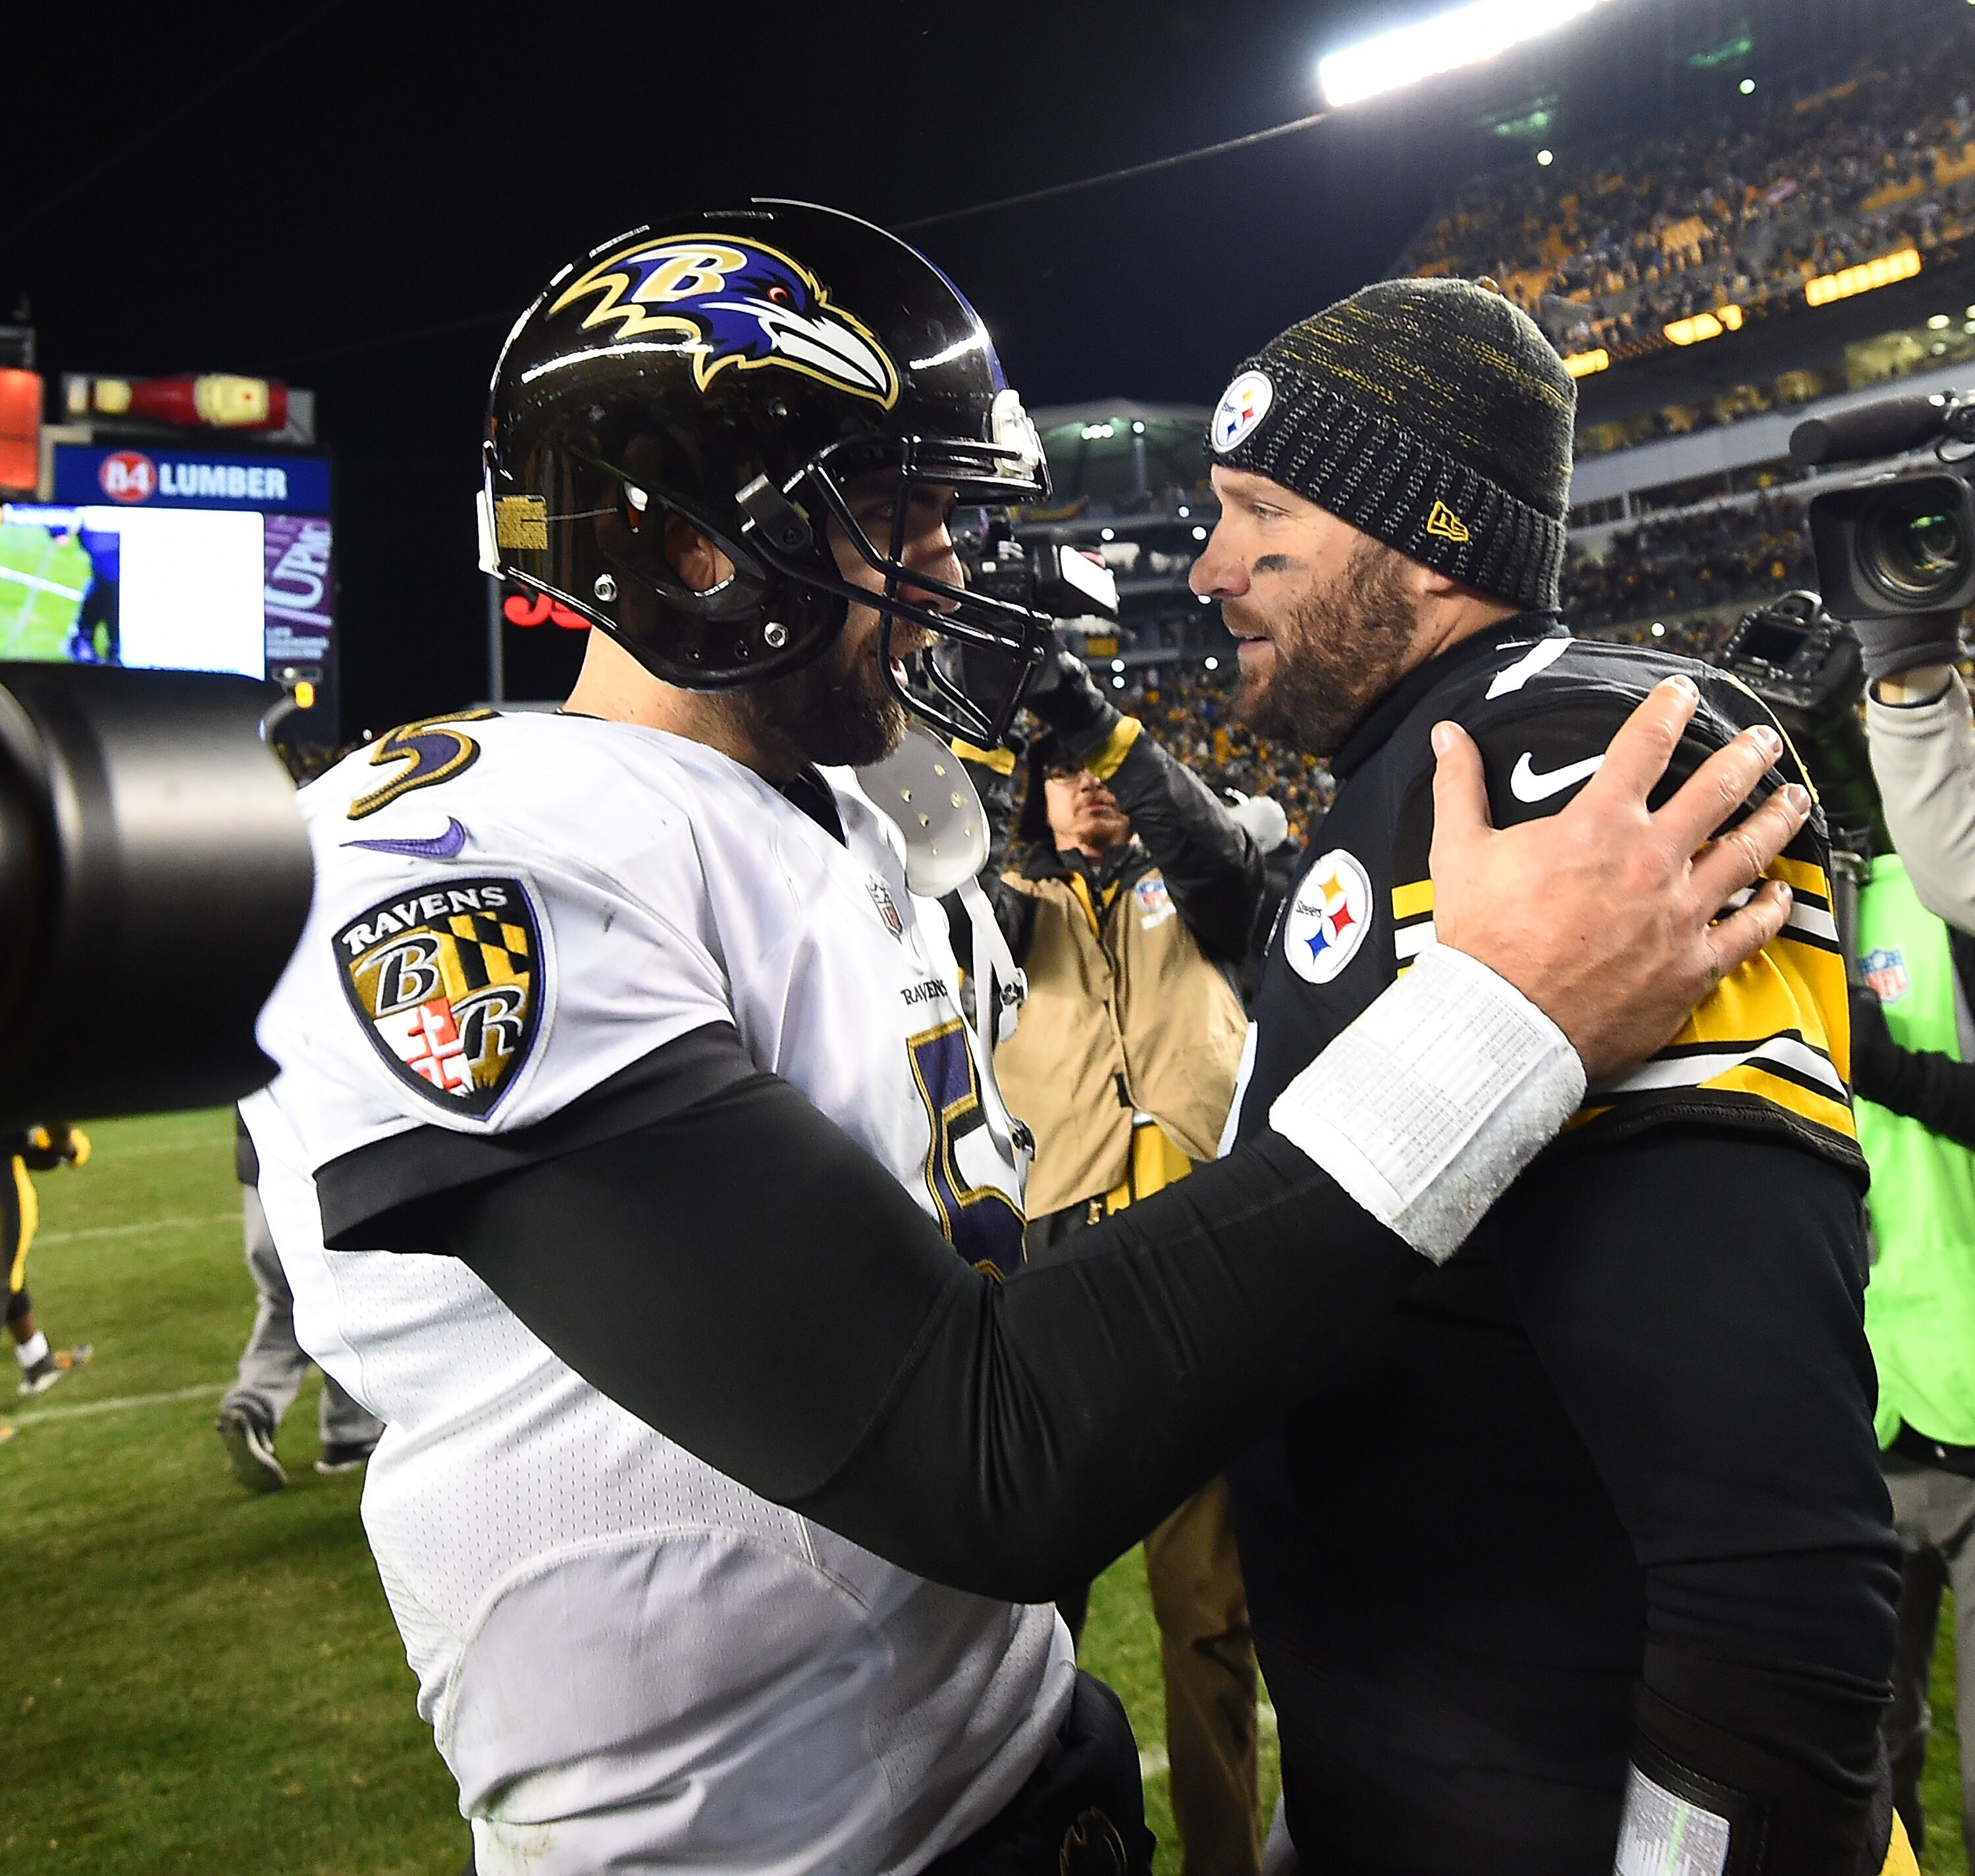 889988952-baltimore-ravens-v-pittsburgh-steelers.jpg